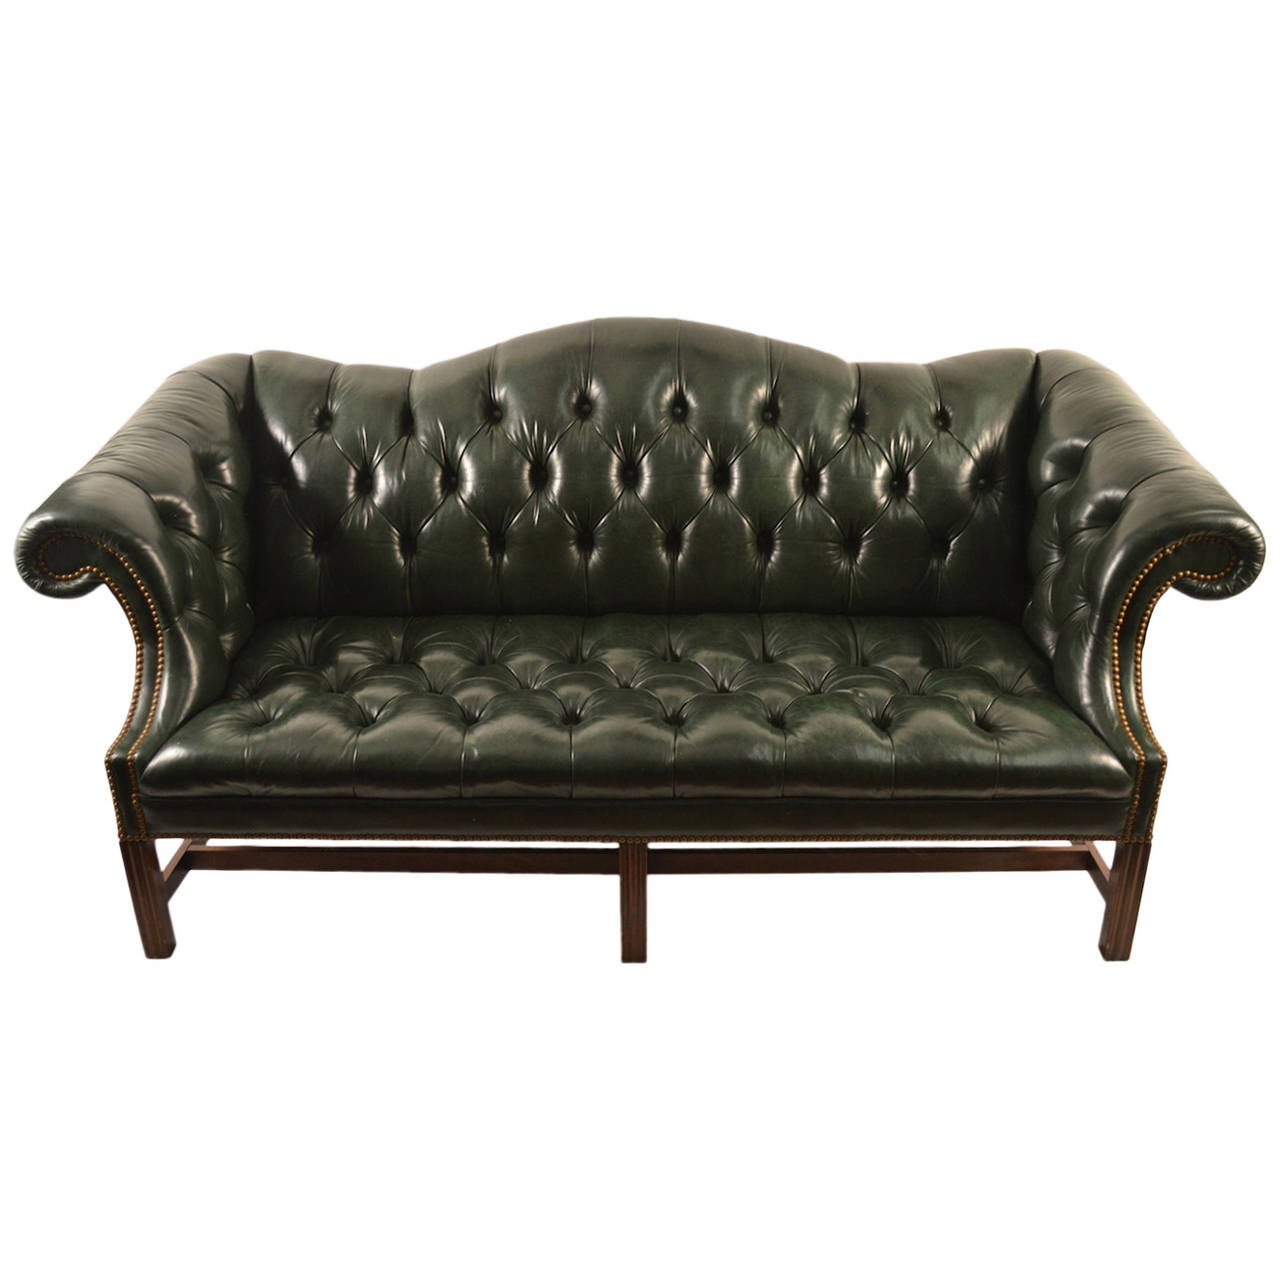 leather chesterfield sofa at 1stdibs. Black Bedroom Furniture Sets. Home Design Ideas